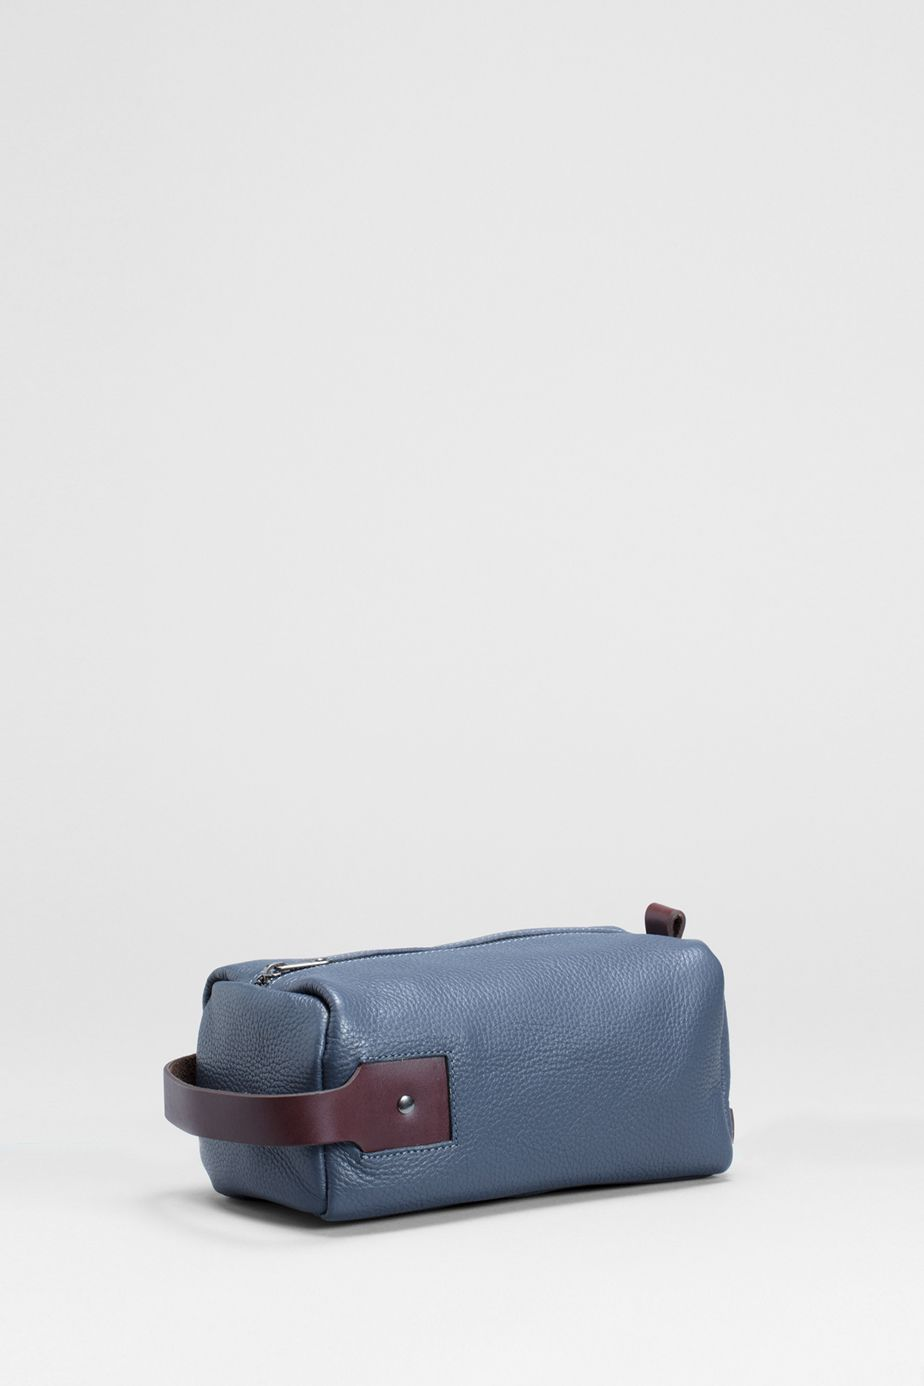 Budal Toiletry Bag